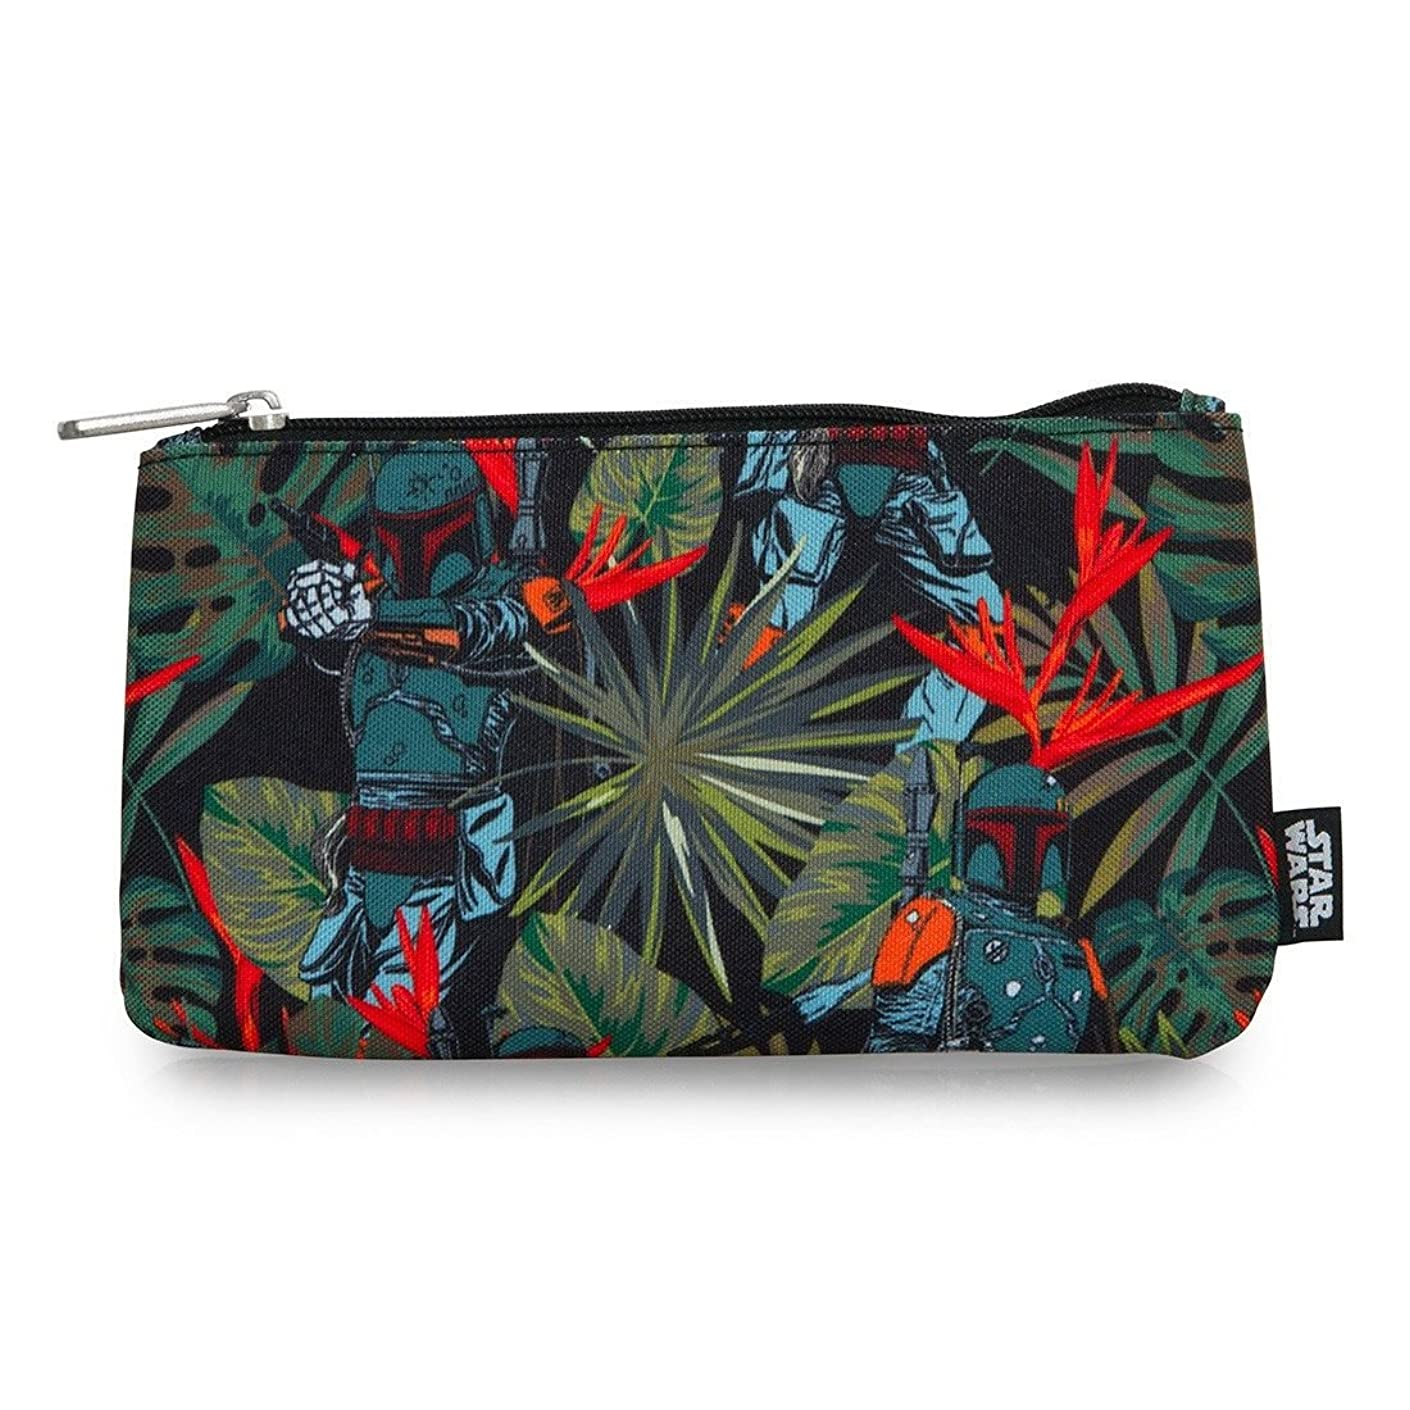 Star Wars Boba Fett Bright Leaves AOP Pencil Case